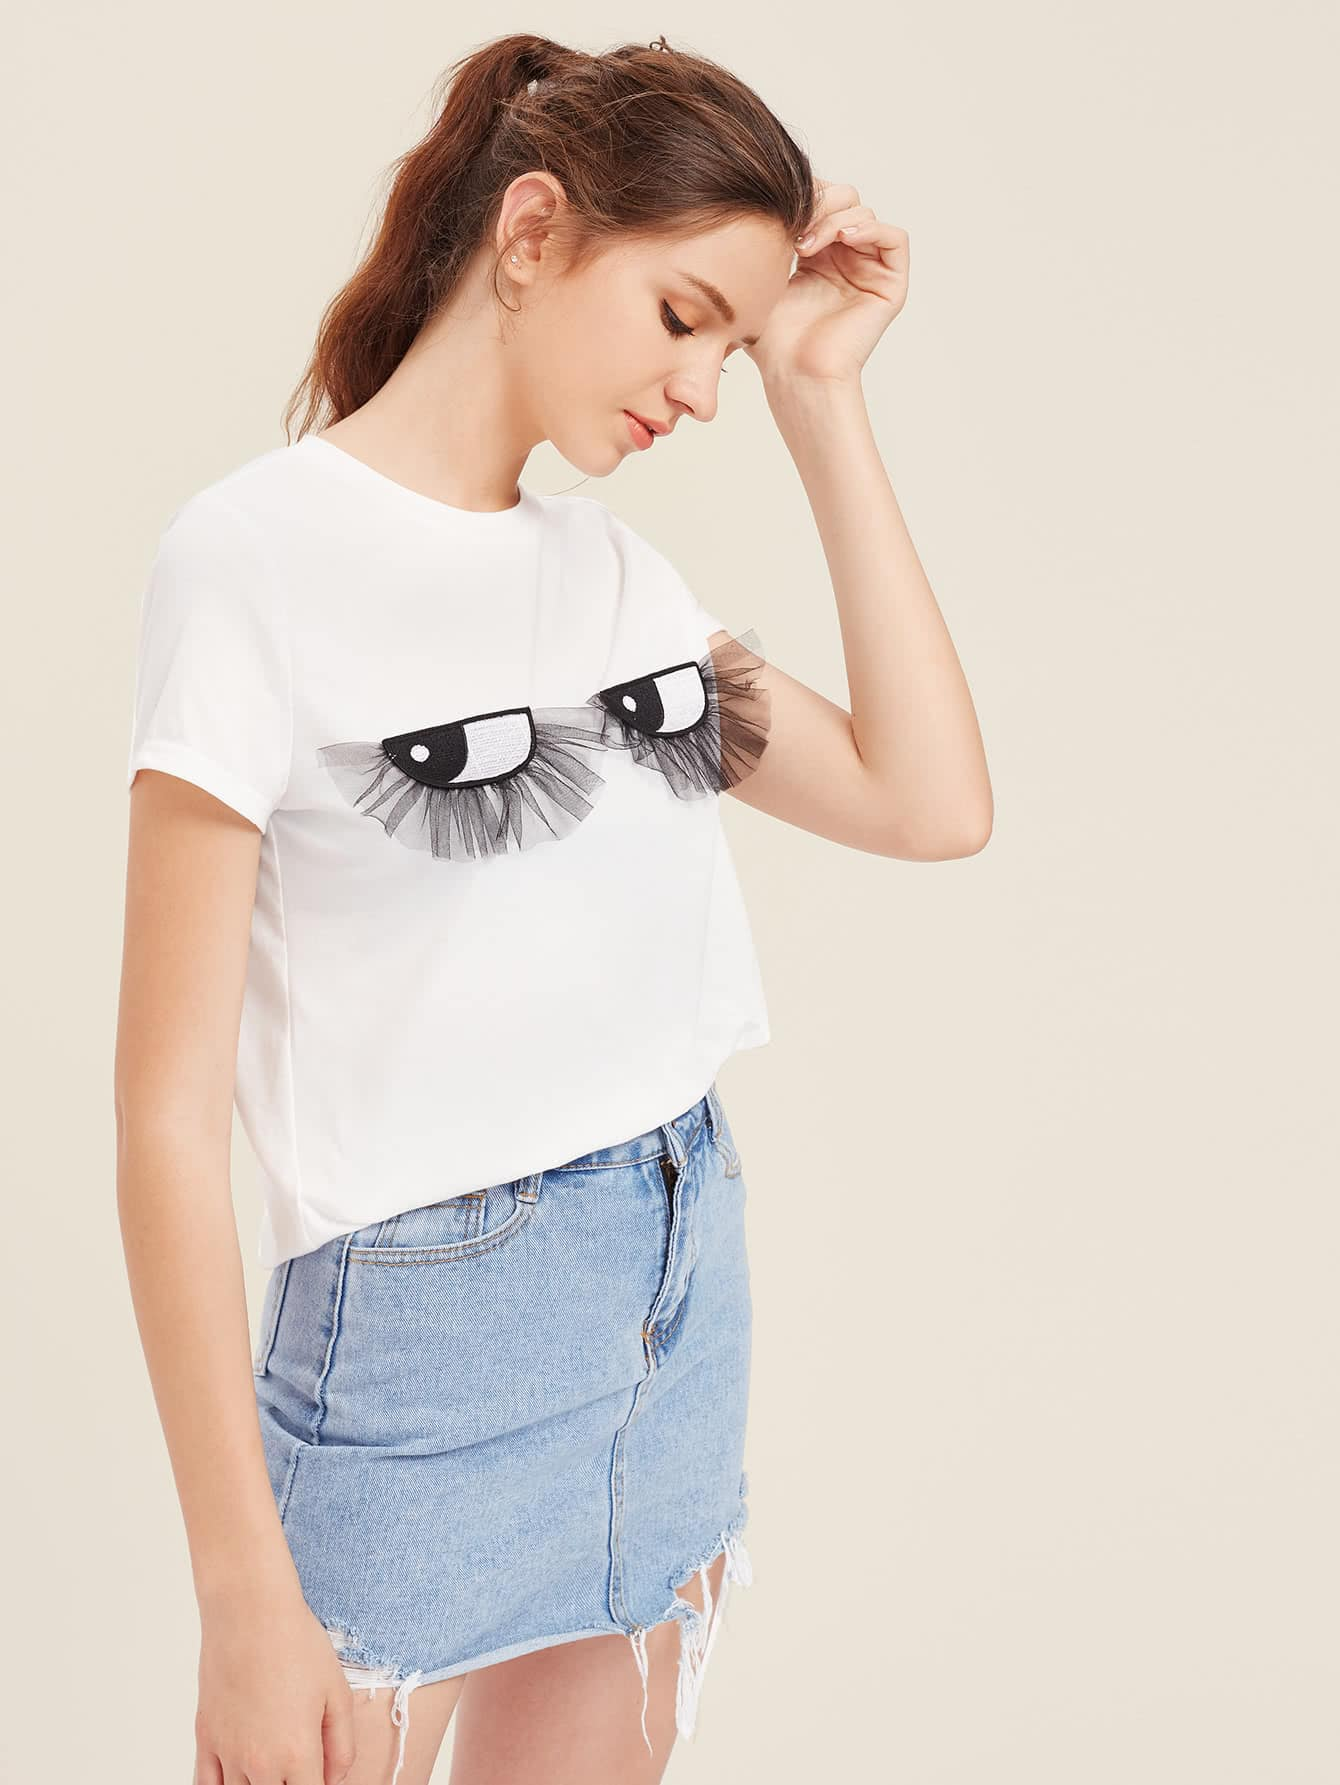 Embroidered Eyes Applique T-shirt two tone embroidered applique t shirt